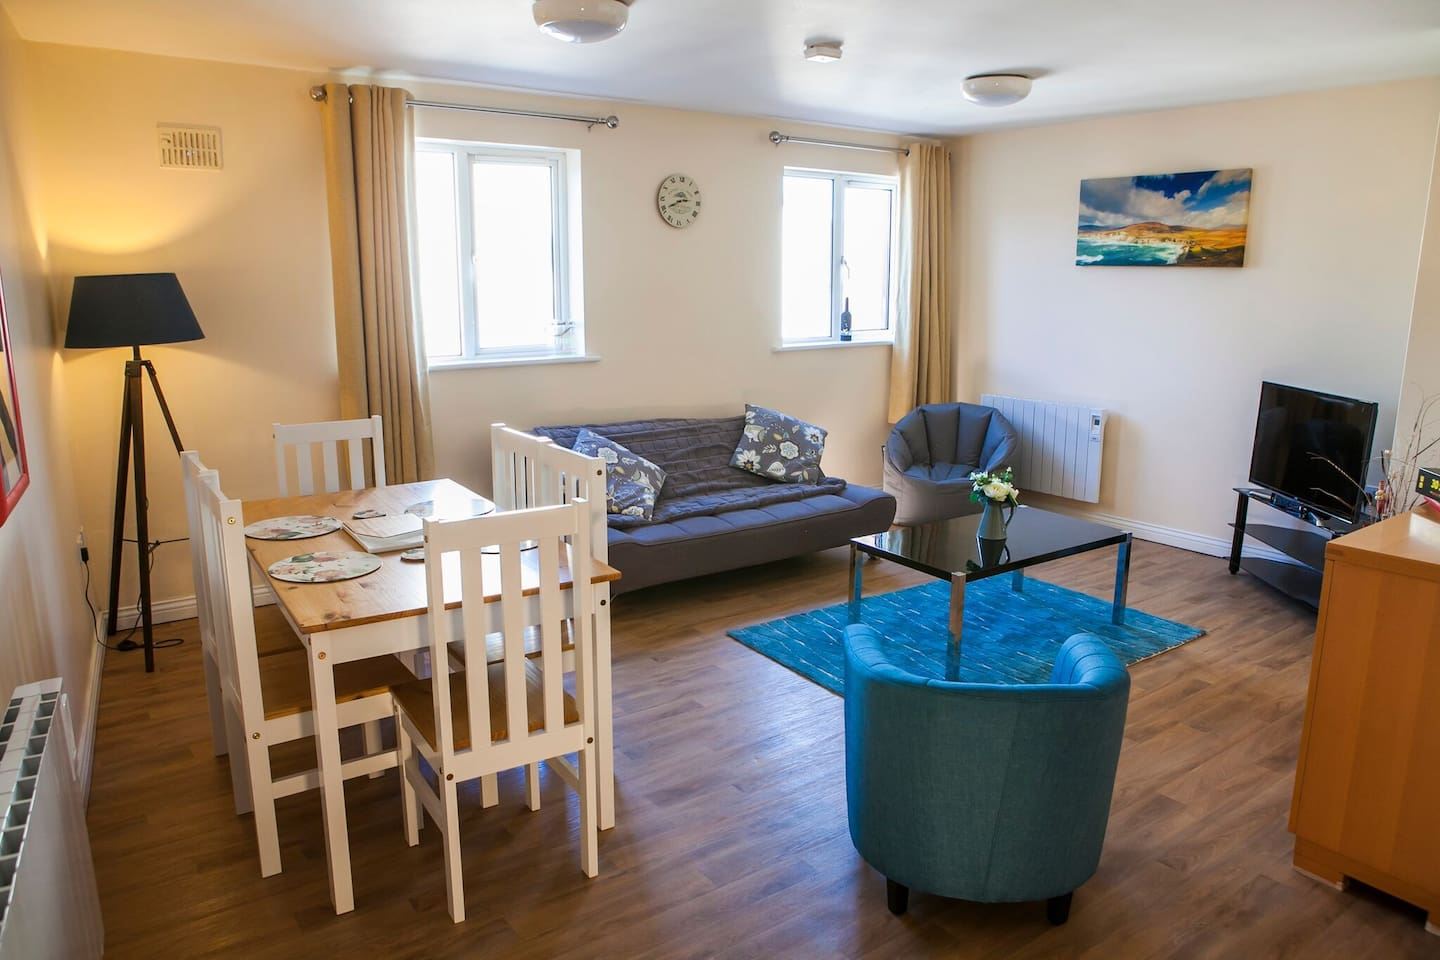 Home away from home in galway city 1c apartments for rent in home away from home in galway city 1c apartments for rent in galway county galway ireland solutioingenieria Images